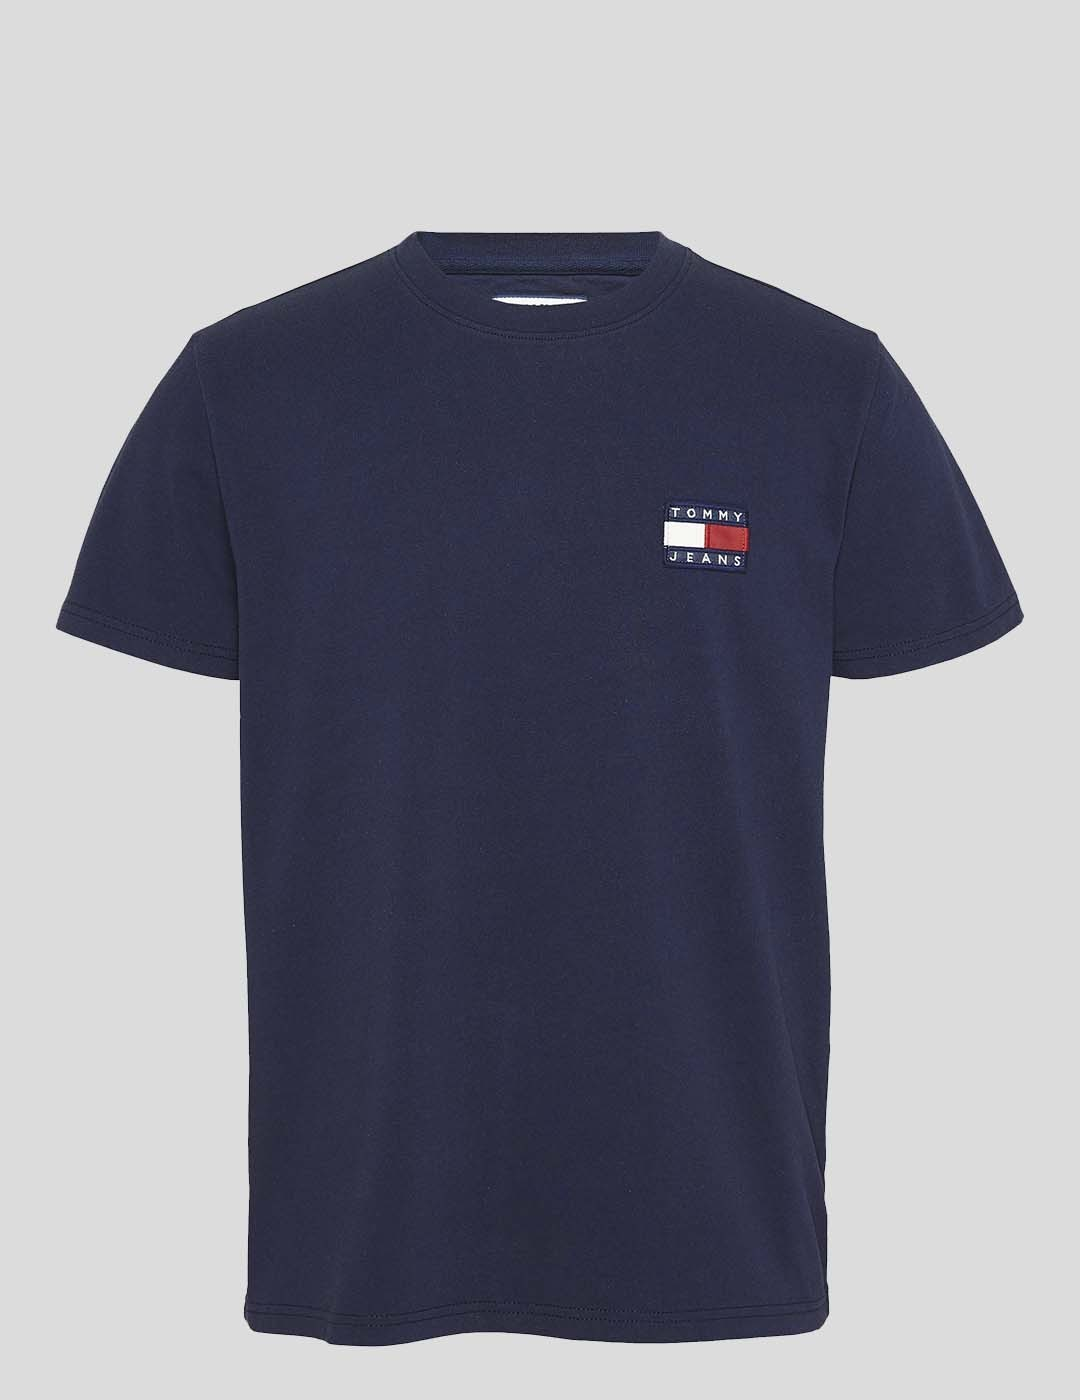 CAMISETA TOMMY JEANS TOMMY BADGE TEE TWILIGHT NAVY